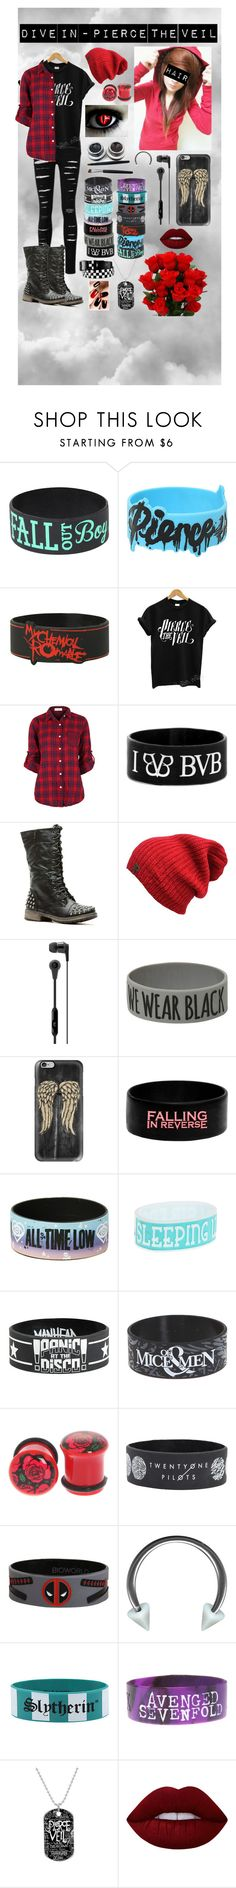 """Dive In - Pierce The Veil"" by mychemicalbandoms ❤ liked on Polyvore featuring Skullcandy, Casetify, Lime Crime and H.I.P."